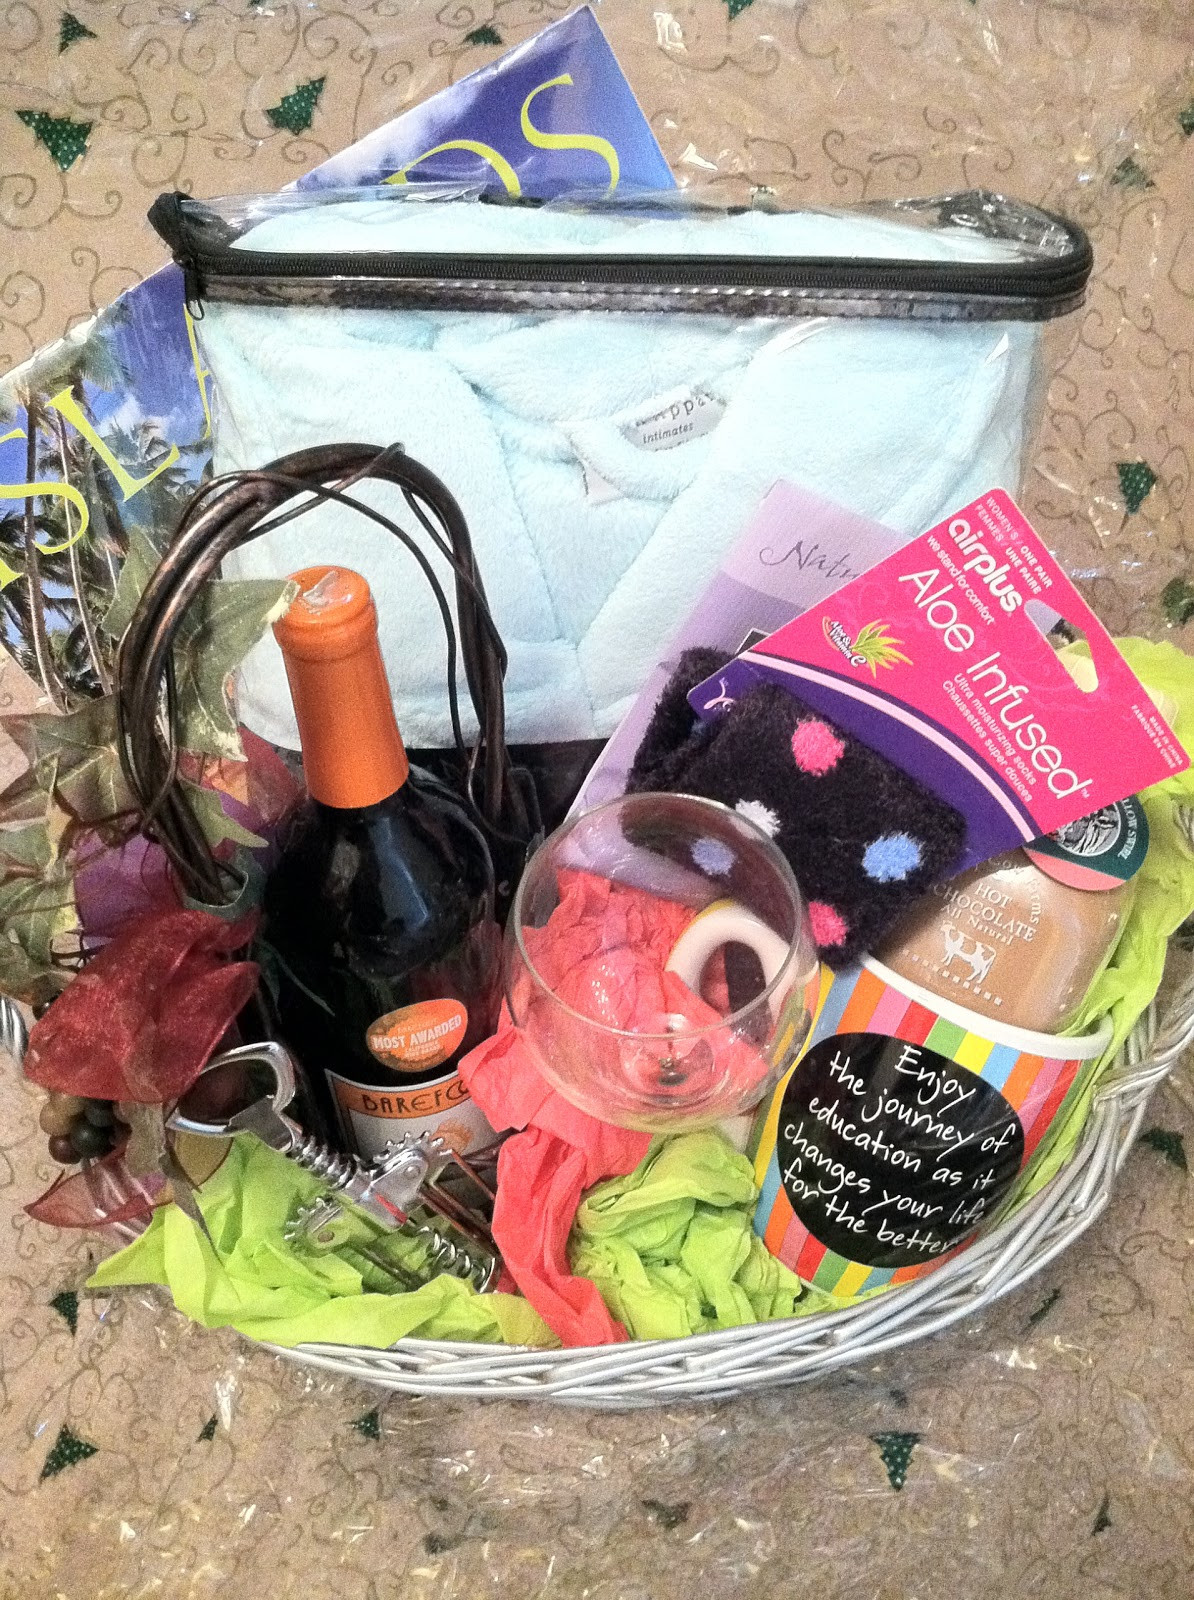 Best ideas about Relaxation Gift Ideas . Save or Pin School Counselor Blog December 2011 Now.